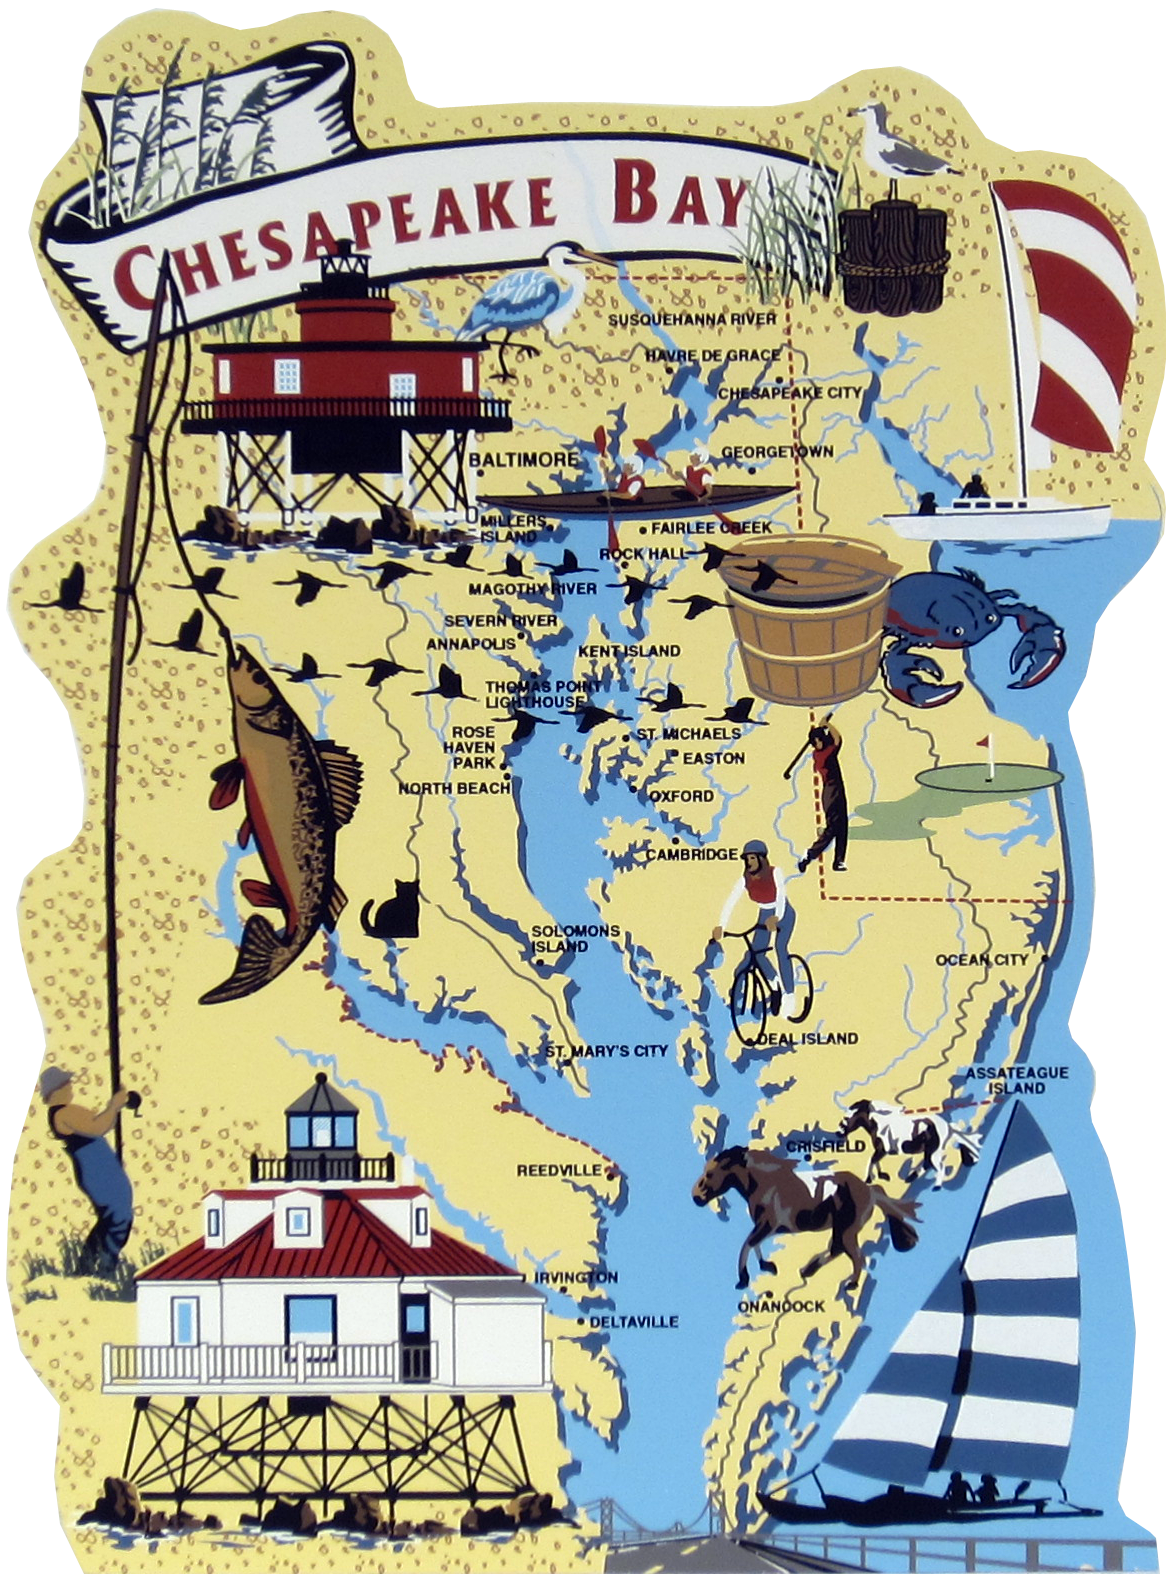 Chesapeake Bay Map The Cat S Meow Village